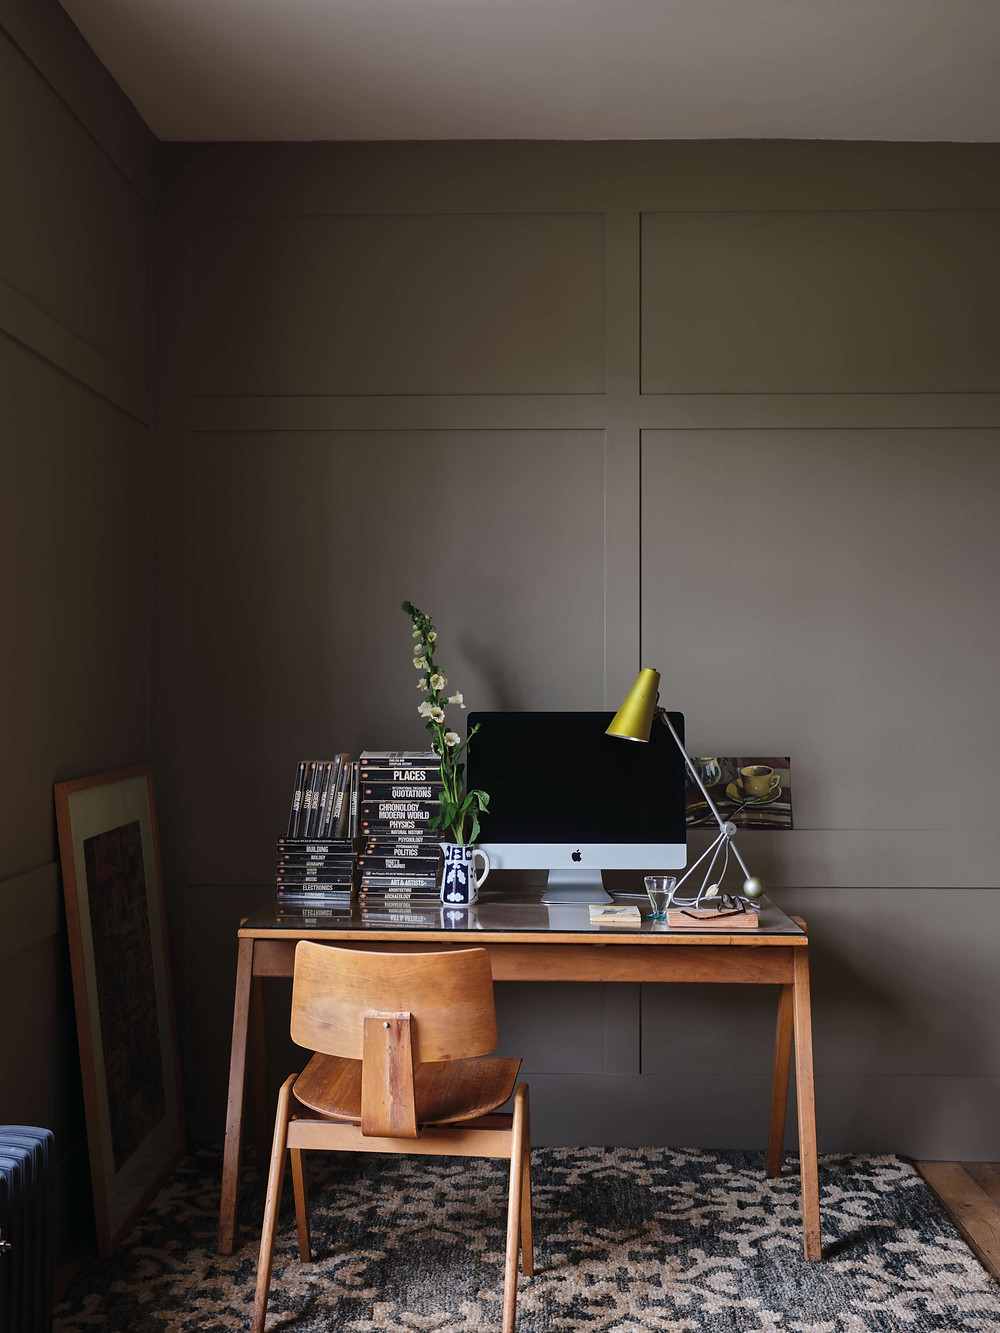 Home office setup with Farrow & Ball's Broccoli Brown paint